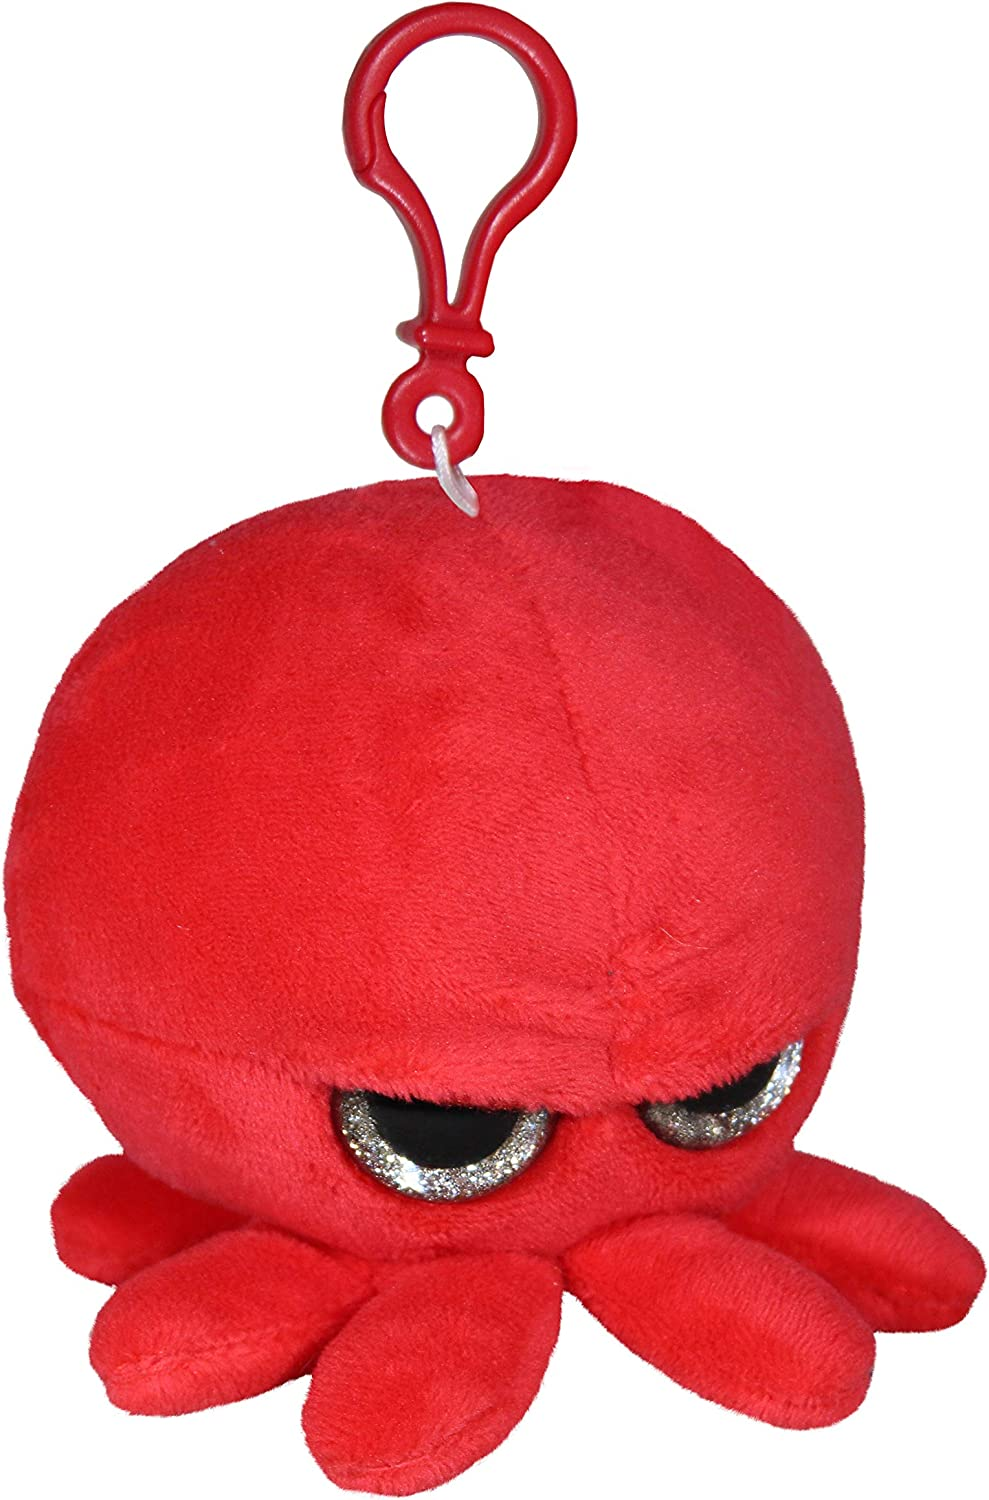 Grumpy Baby Octopus - Plush Keychain Pendant with Clip - Cute Super Soft Plush Stuffed Animal Toy decoration backpack purse handbag accessories - Red, 3